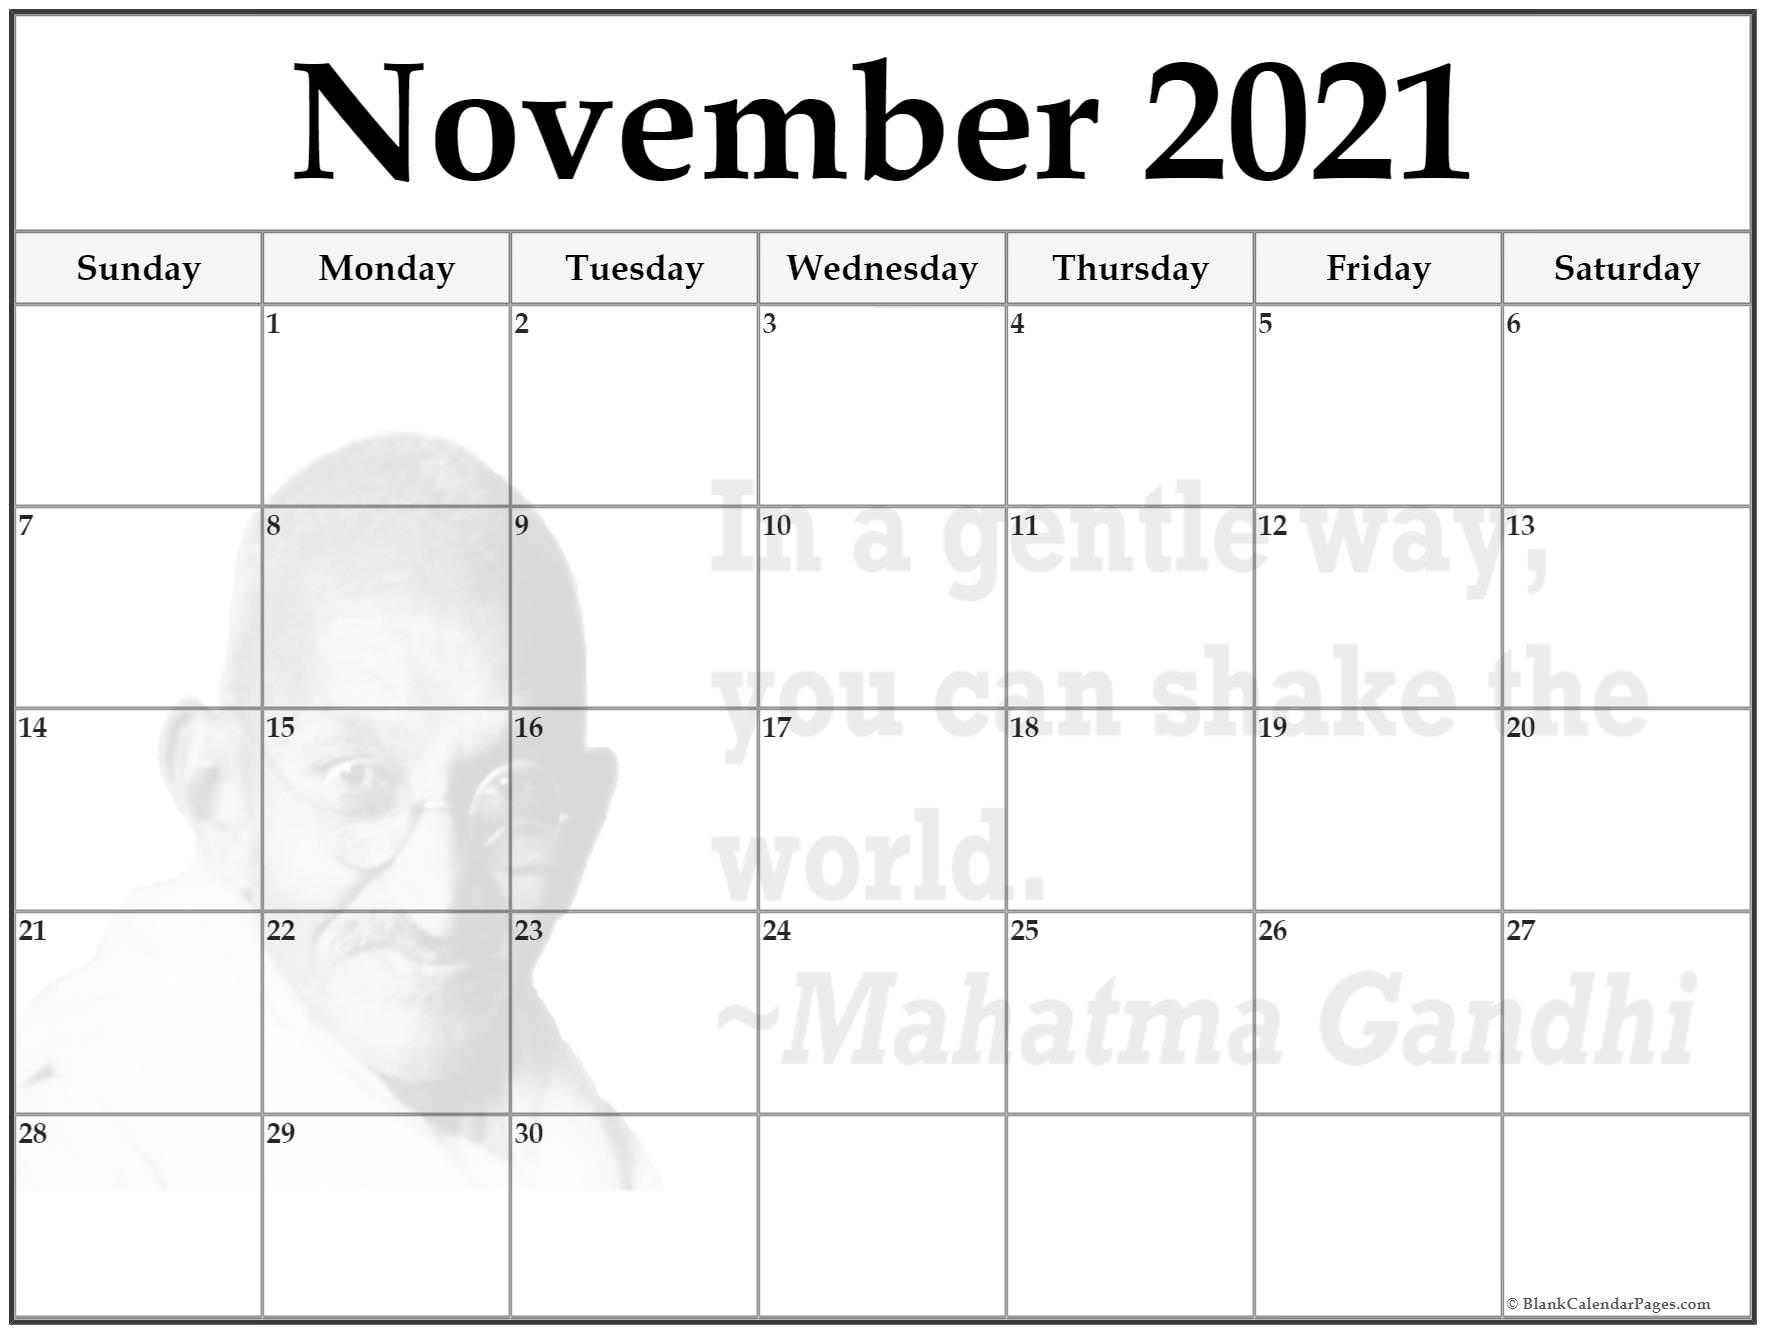 November 2021 gandhi calendar . In a gentle way, you can shake the world. ~Mahatma Gandhi